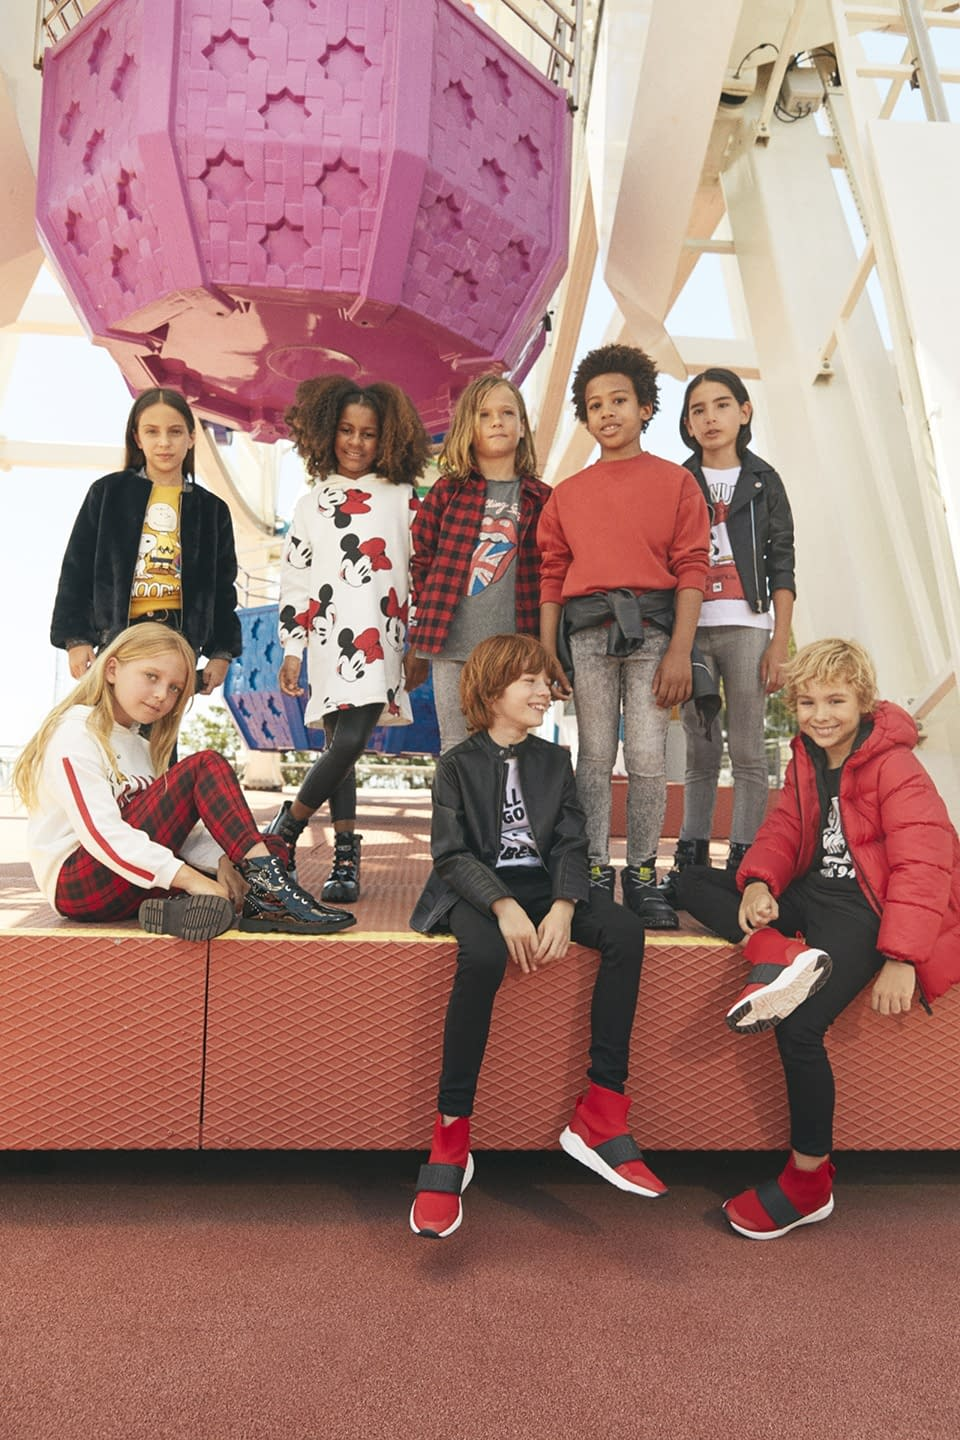 LEFTIES-KIDS-AW20-PHOTO-07-BY-ENRIC-GALCERAN